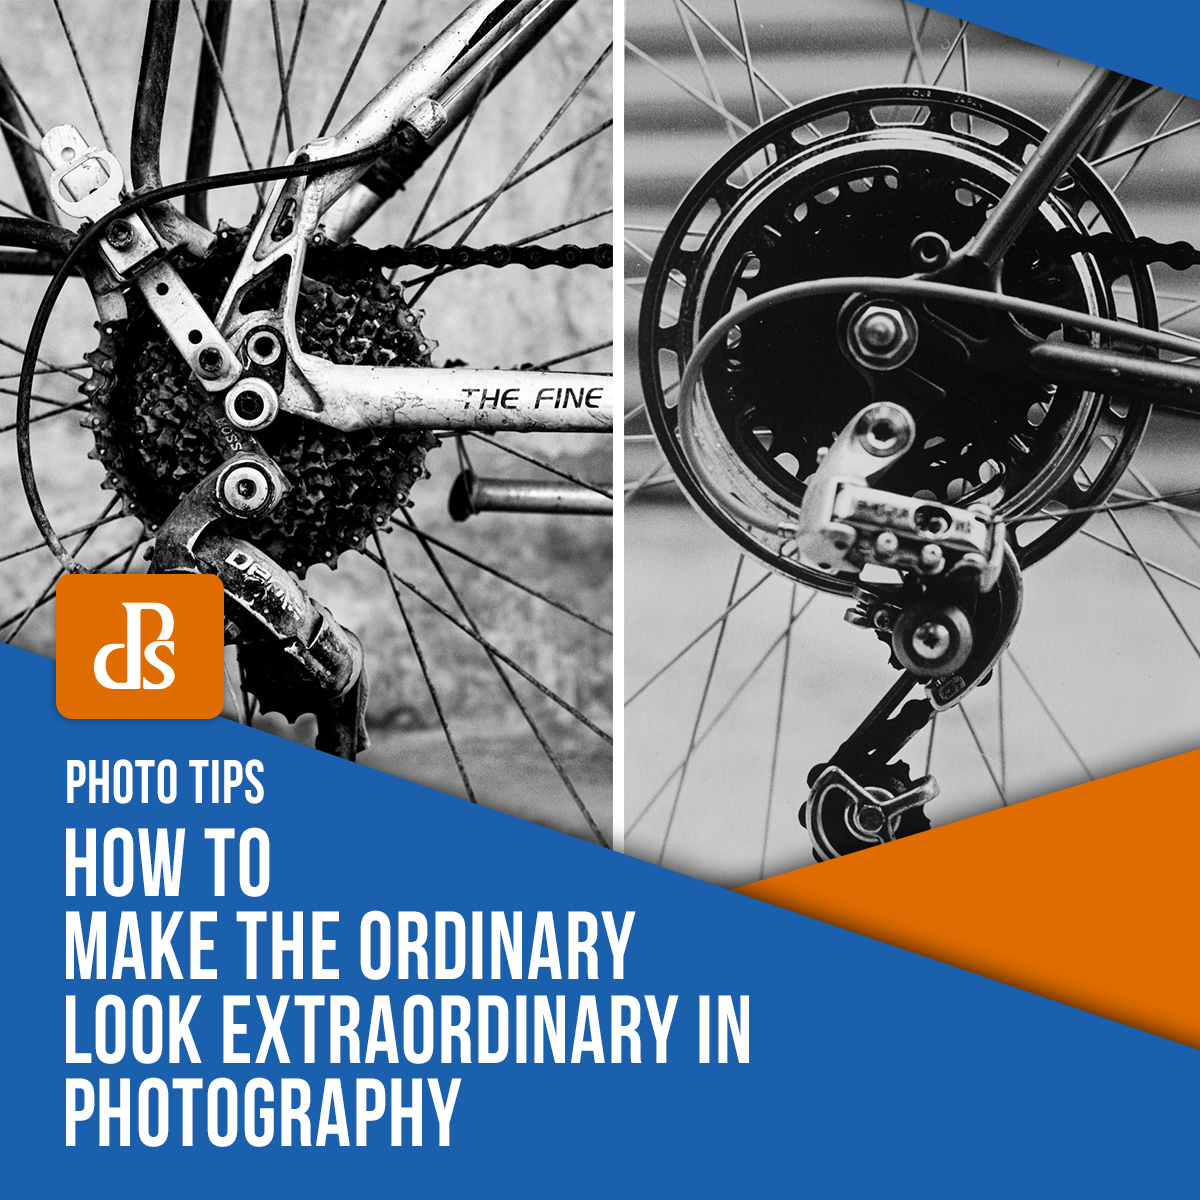 How to Make the Ordinary Look Extraordinary in Photography